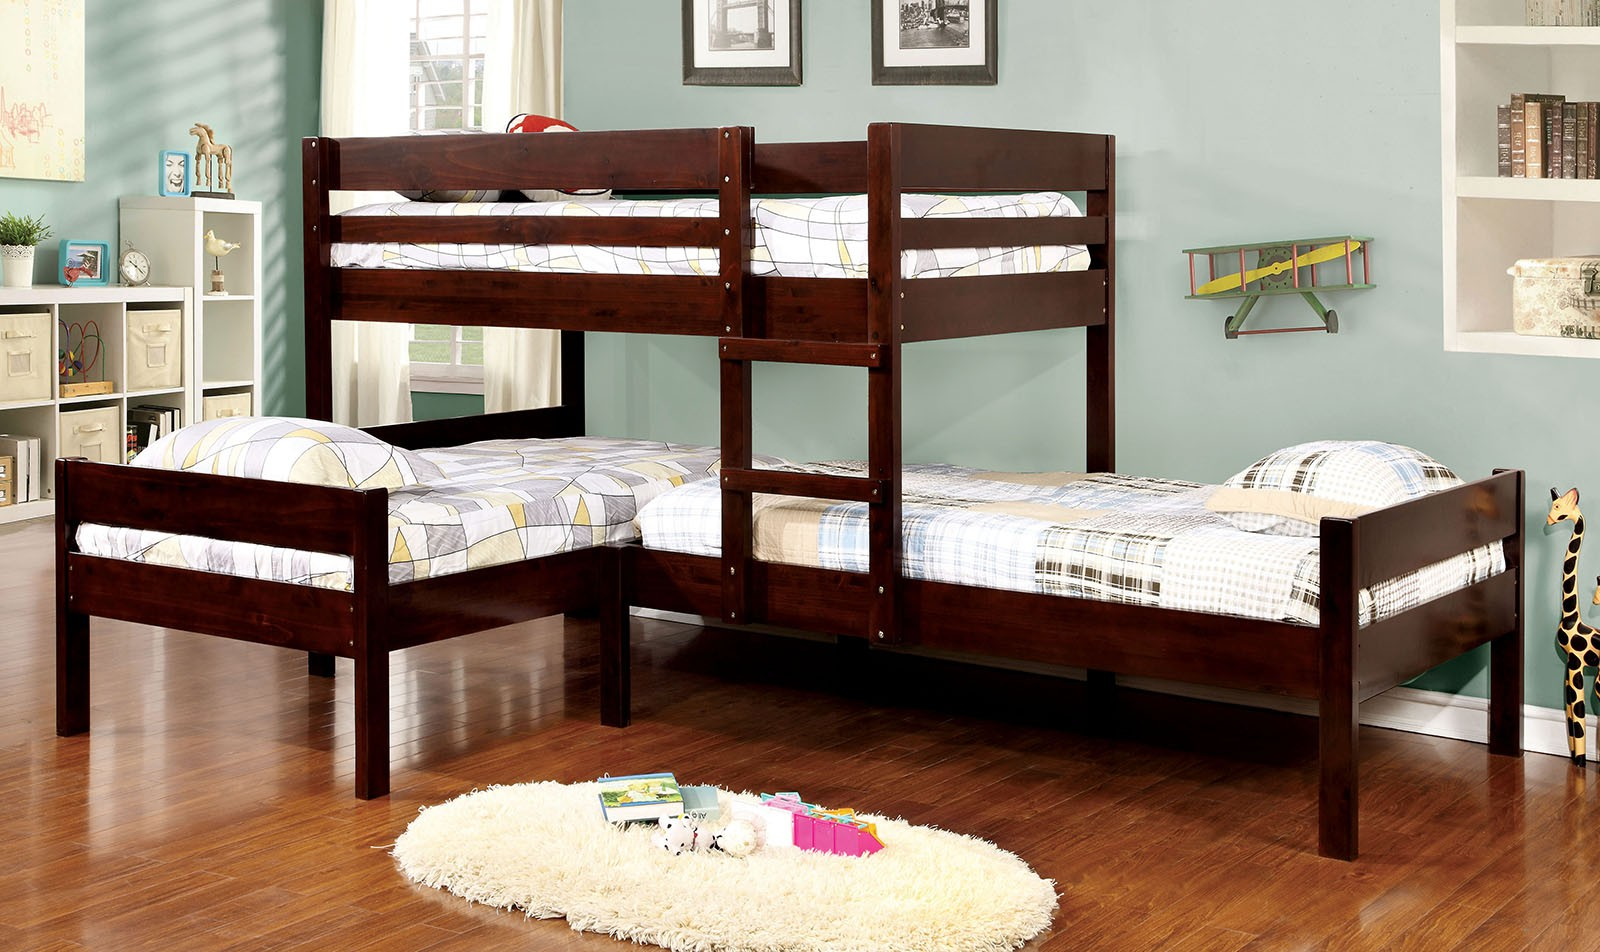 Picture of: 3 Tier Beds The Bed Trend For Space Short Www Justbunkbeds Com